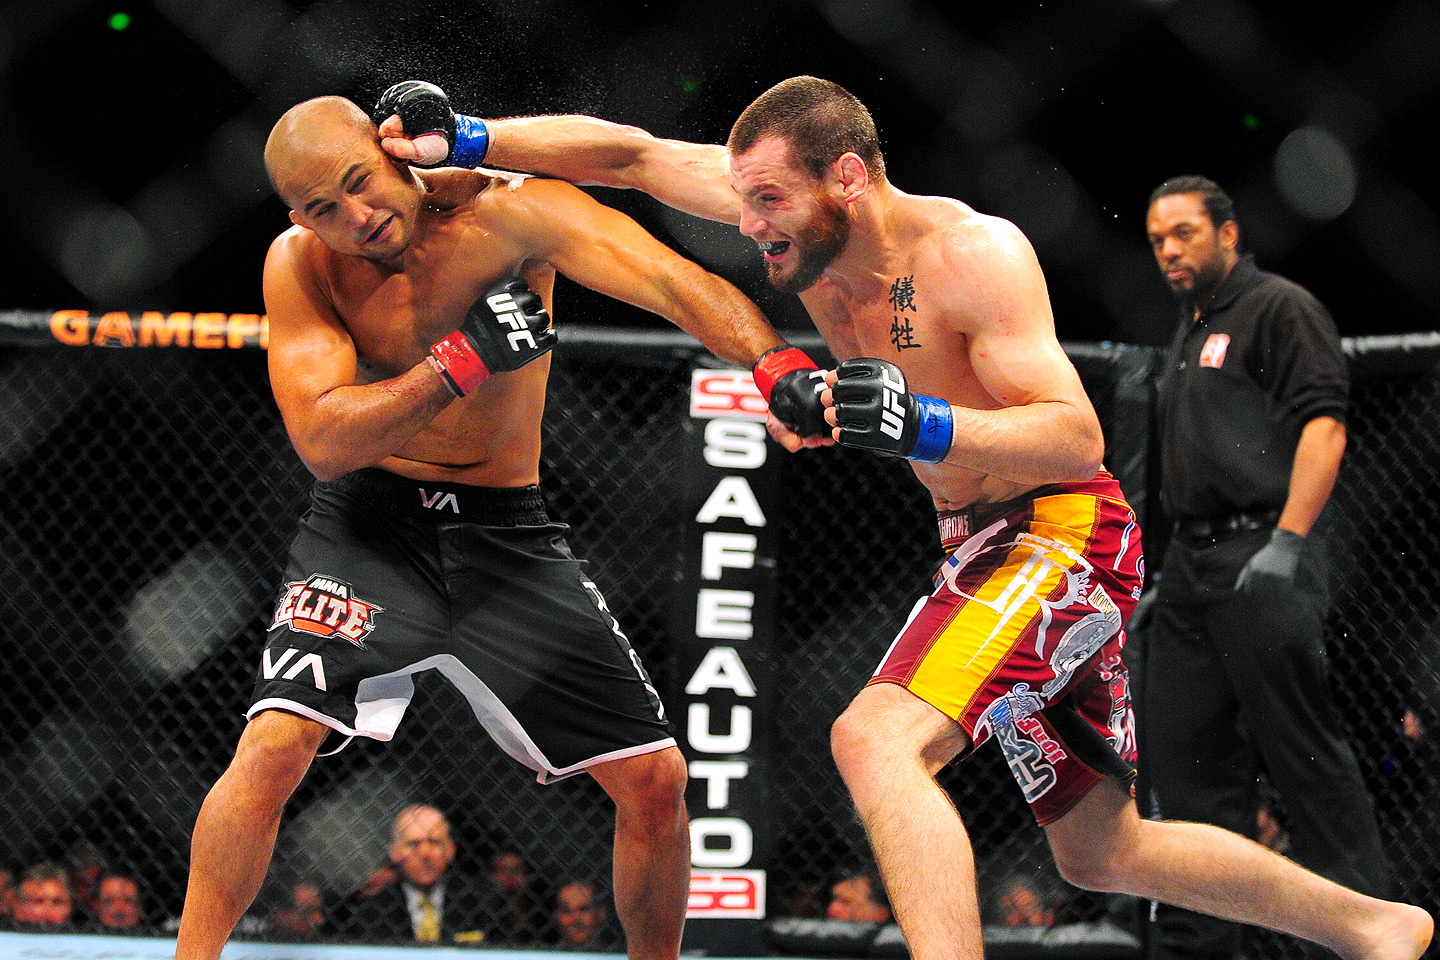 B.J. Penn vs. Jon Fitch